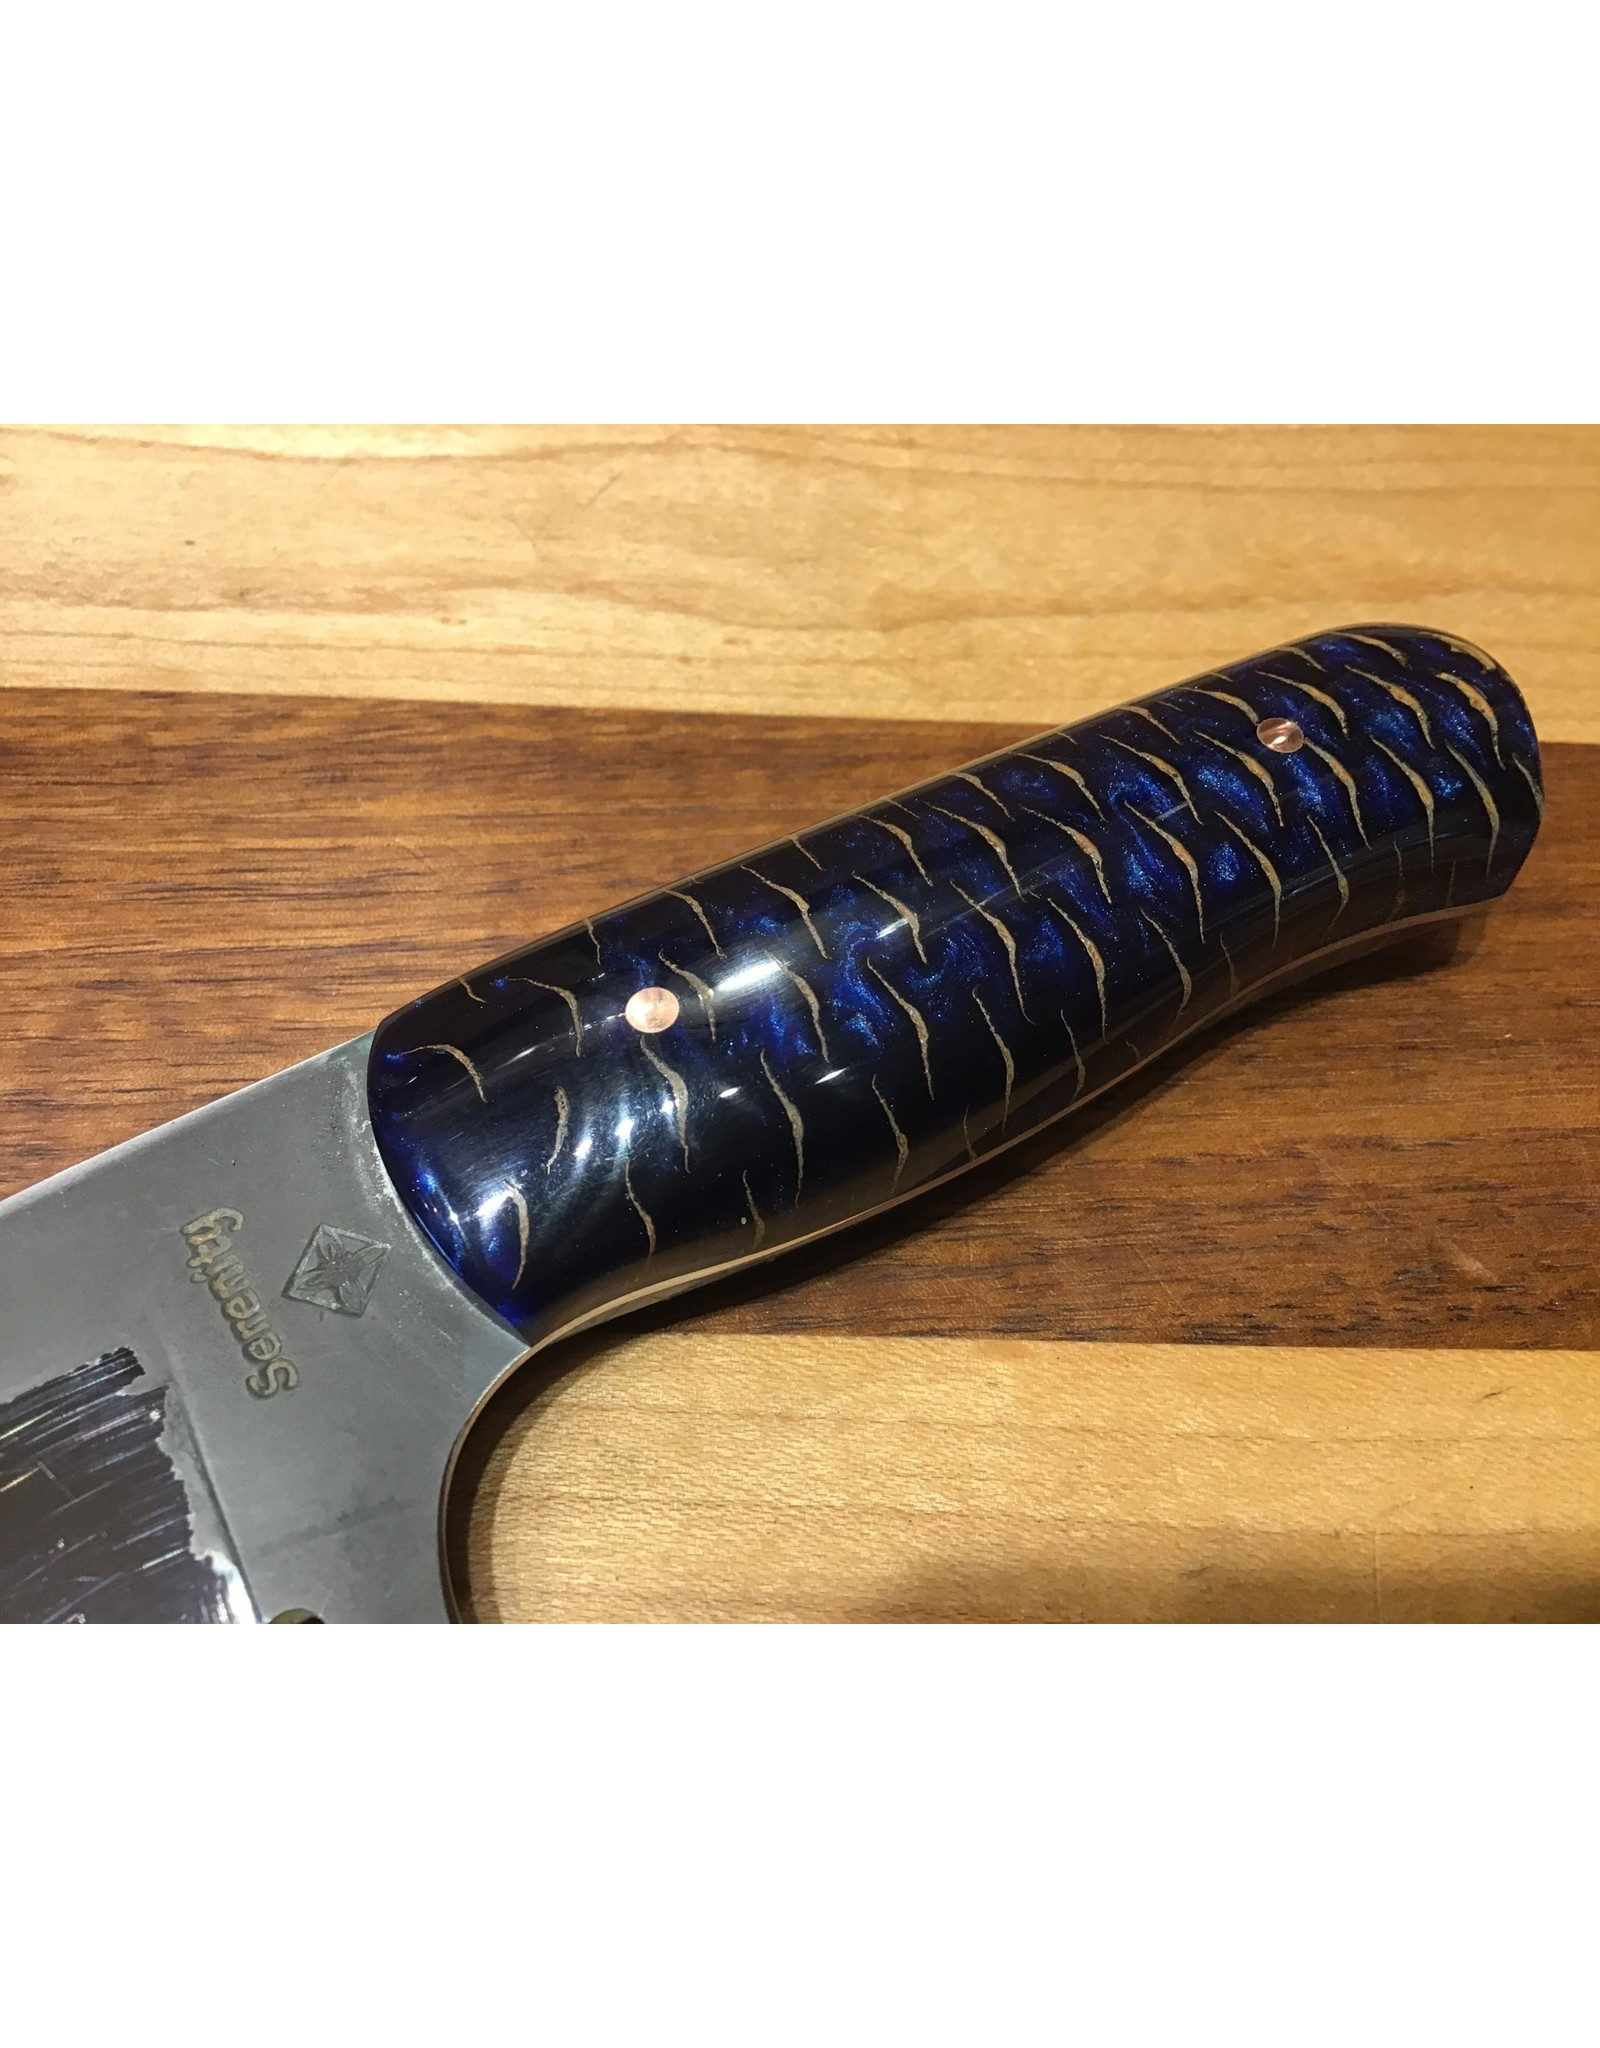 Serenity Boning Knife in Zi-FiNite stainless steel with a Blue Pine Cone Handle